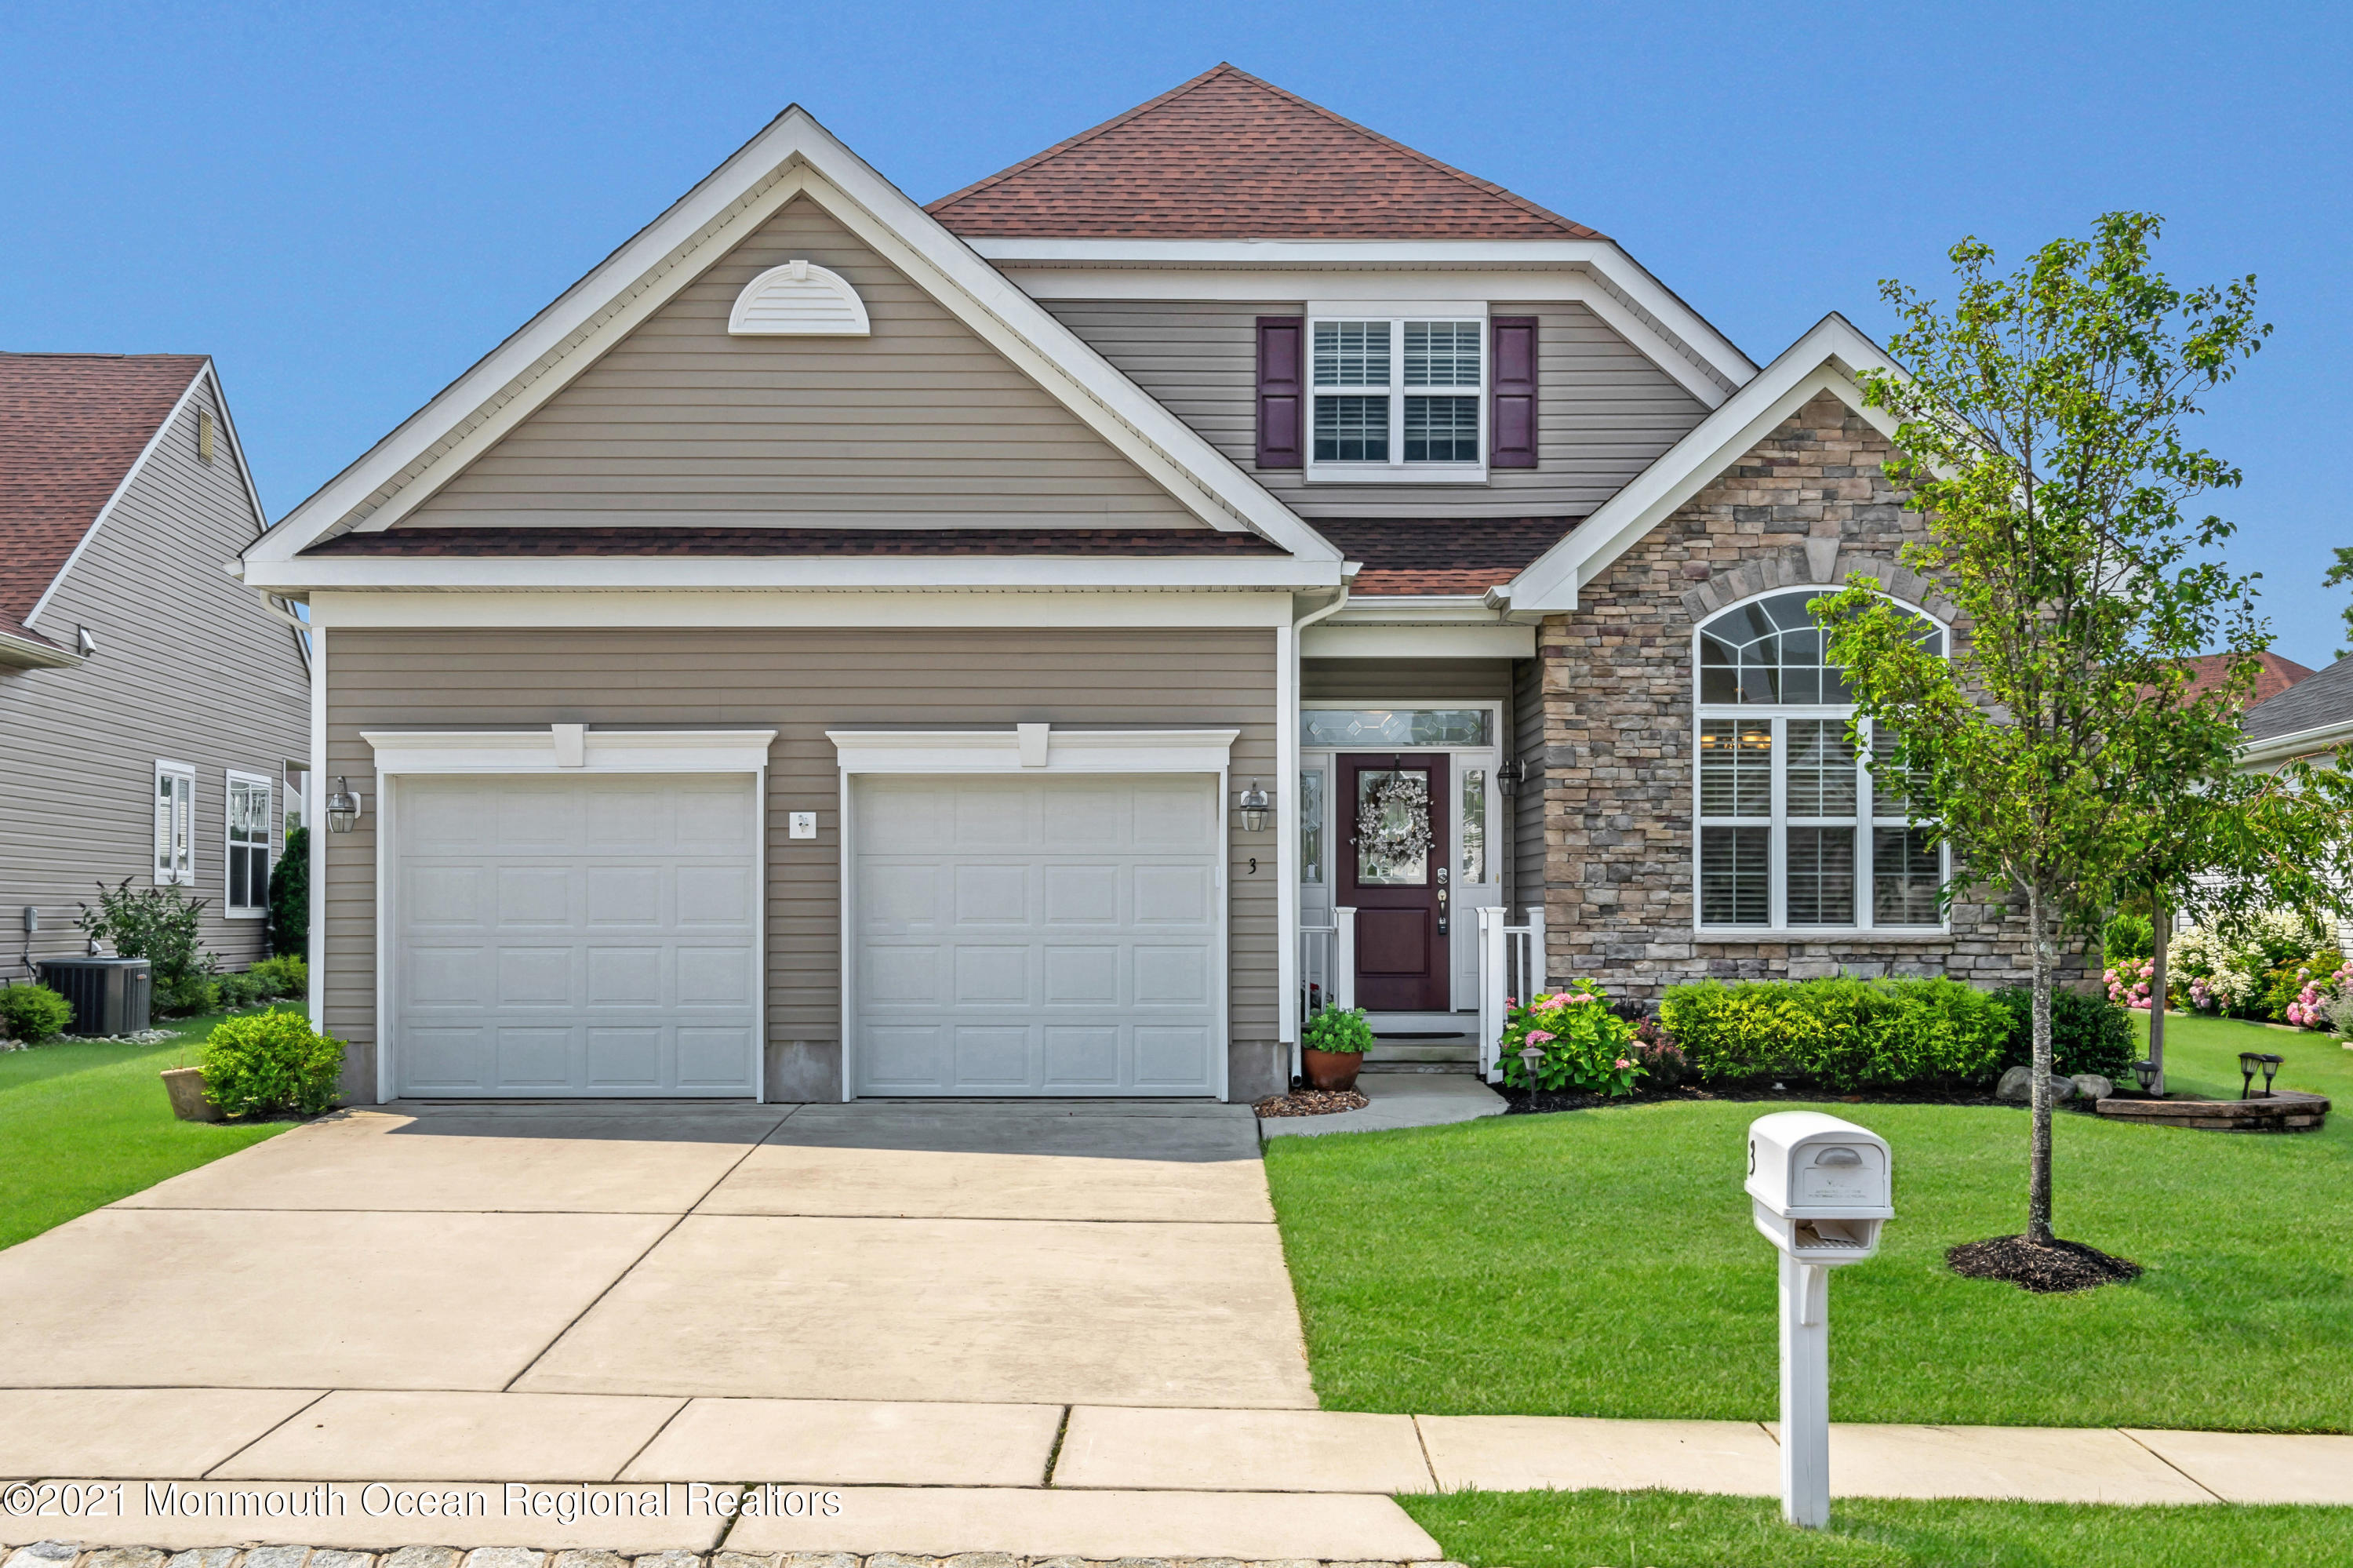 PERFECT NEWER WARWICK I WITH A CUL DE SAC LOCATION!  SHOWS LIKE A MODEL HOME, NOTHING TO DO - PLANTATION SHUTTERS, CUSTOM TILE FLRS, GOURMET KITCHEN W GRANITE CTRS & STONE BACKSPLASH, TANKLESS HOTWATER HEATER, FAMILY ROOM W GAS FP, A MASTER SUITE W WALK IN CLOSET PLUS A MASTER BATH W HUGE WALK IN SHOWER . 2 BDRMS, 2 FULL BTHS PLUS A DEN W FRENCH DRS COMPLETE THIS FABULOUS HOME.  TRUE RESORT STYLE LIVING IN GREENBRIAR OCEANAIRE GOLF & COUNTRY CLUB.  A 38,000 SQ FT CLUBHOUSE W EVERY AMENITY YOU COULD WISH FOR INCLUDING A PRIVATE RESTAURANT & PUB, NEWER GYM, AEROBIC STUDIO, ARTS/CRAFTS RM, PRO SHOP & INDOOR/OUTDOOR POOLS W SHOWERS & A LOCKER ROOM.  AN OUTDOOR SNACK BAR, 18 HOLE PRIVATE CHAMPIONSHIP GOLF COURSE, TENNIS & PICKLE BALL, BOCCI PLUS A DRIVING RANGE.  COME JOIN THIS WONDERFUL LIFE!